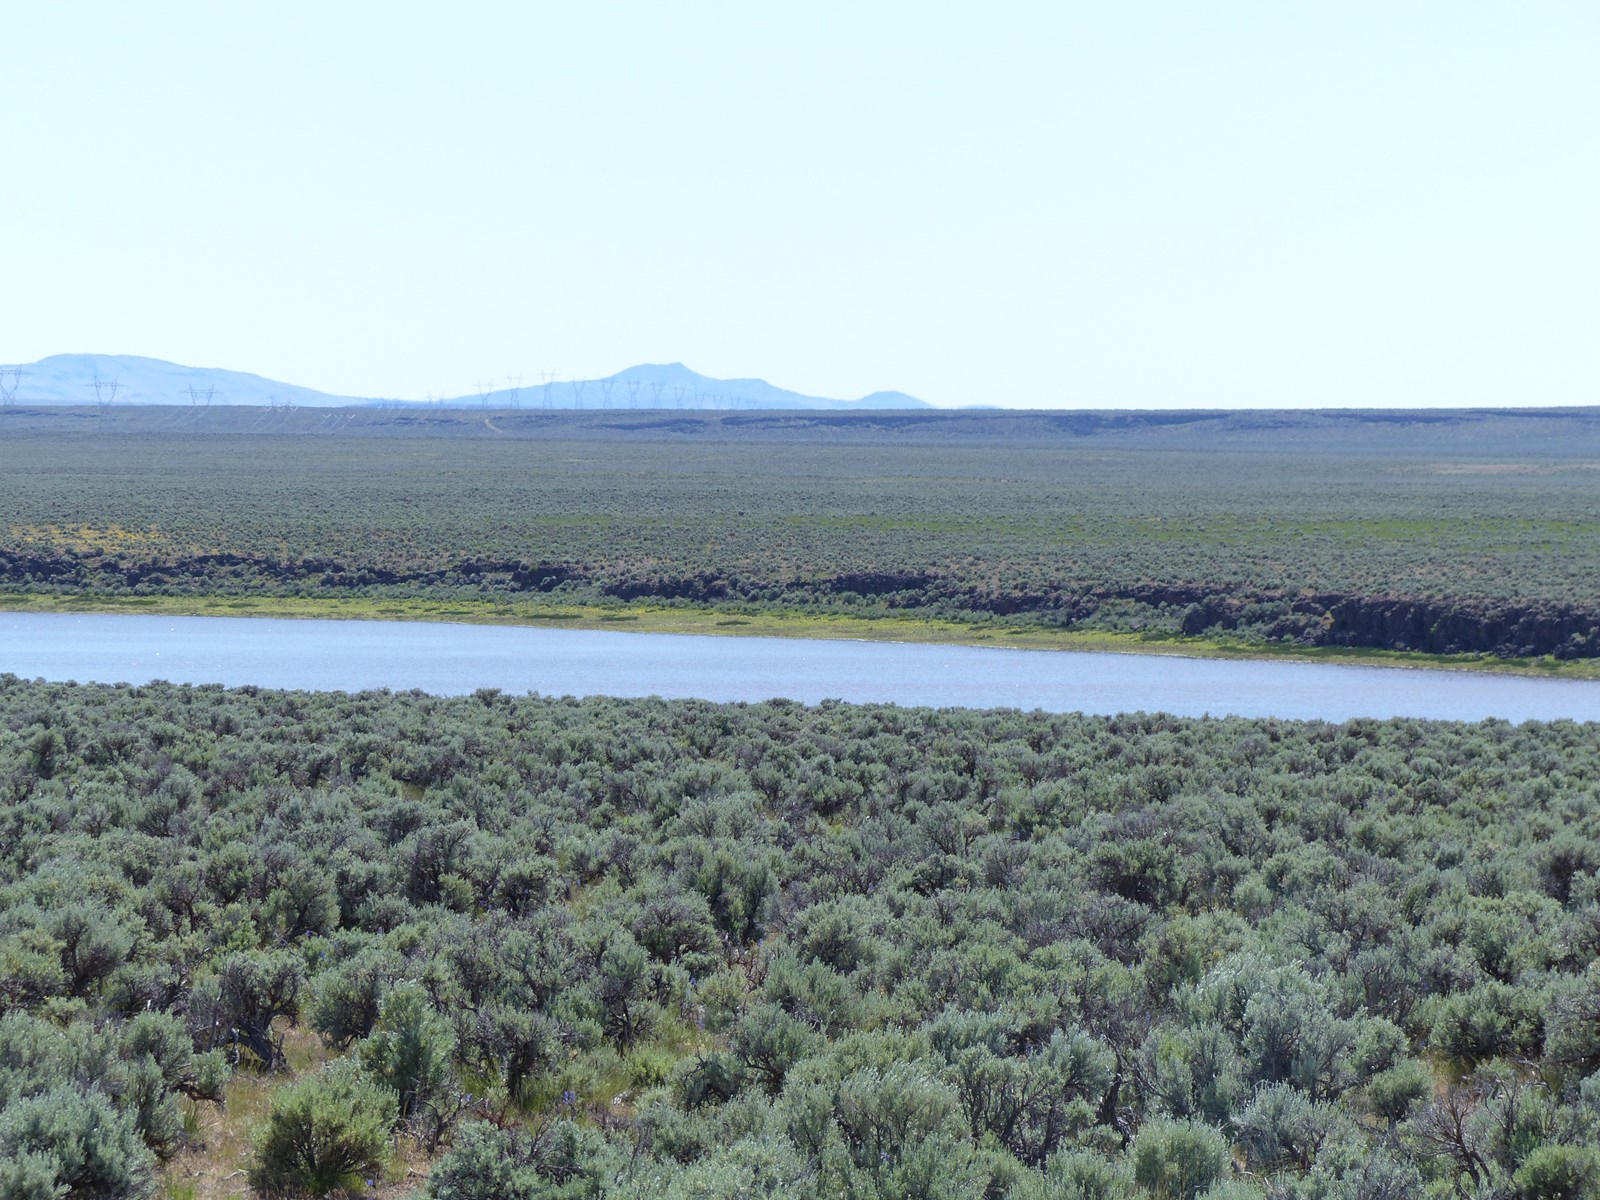 160 ACRES SOUTHWEST OF BURNS OREGON